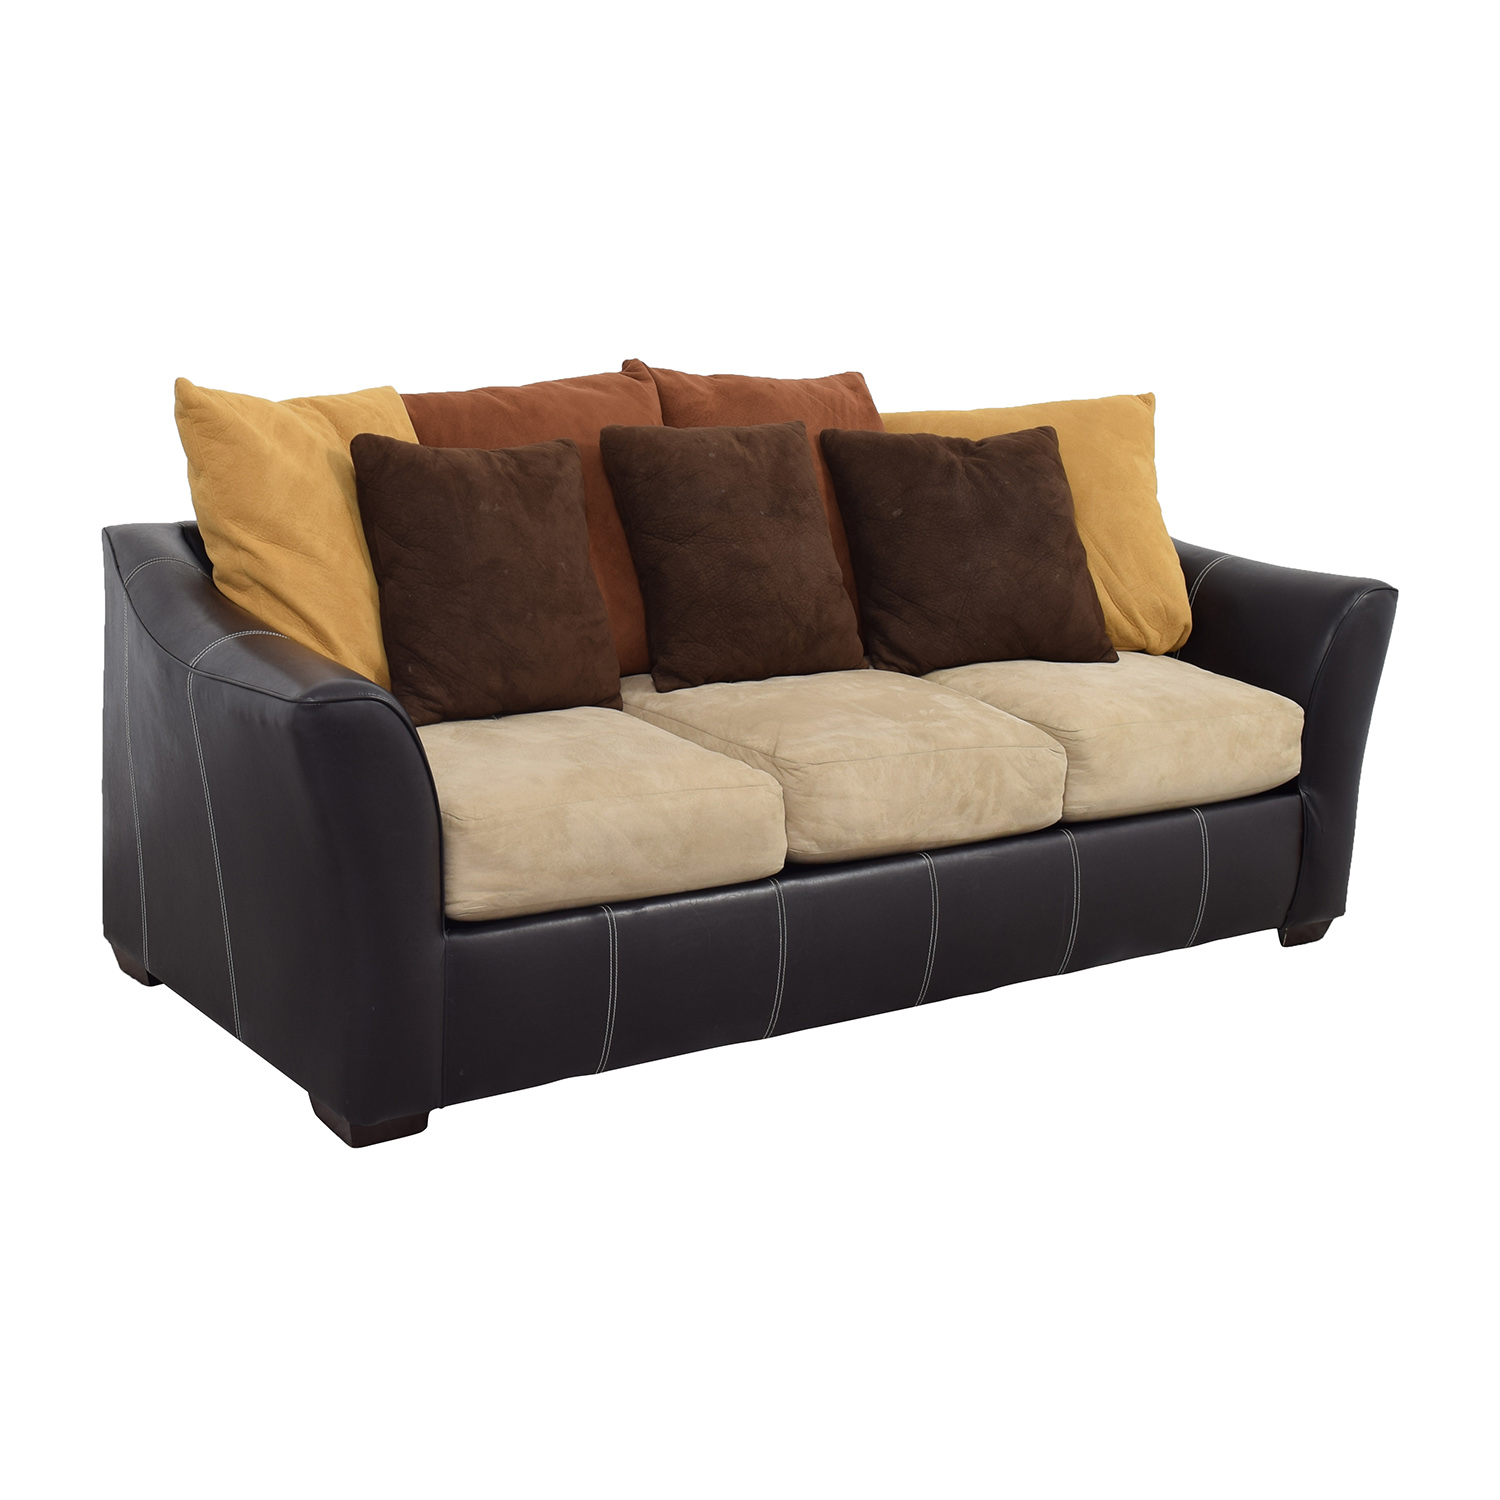 Second Hand Leather Sofas Gosport: Brown Leather Frame With Earth Tone Cushion Sofa